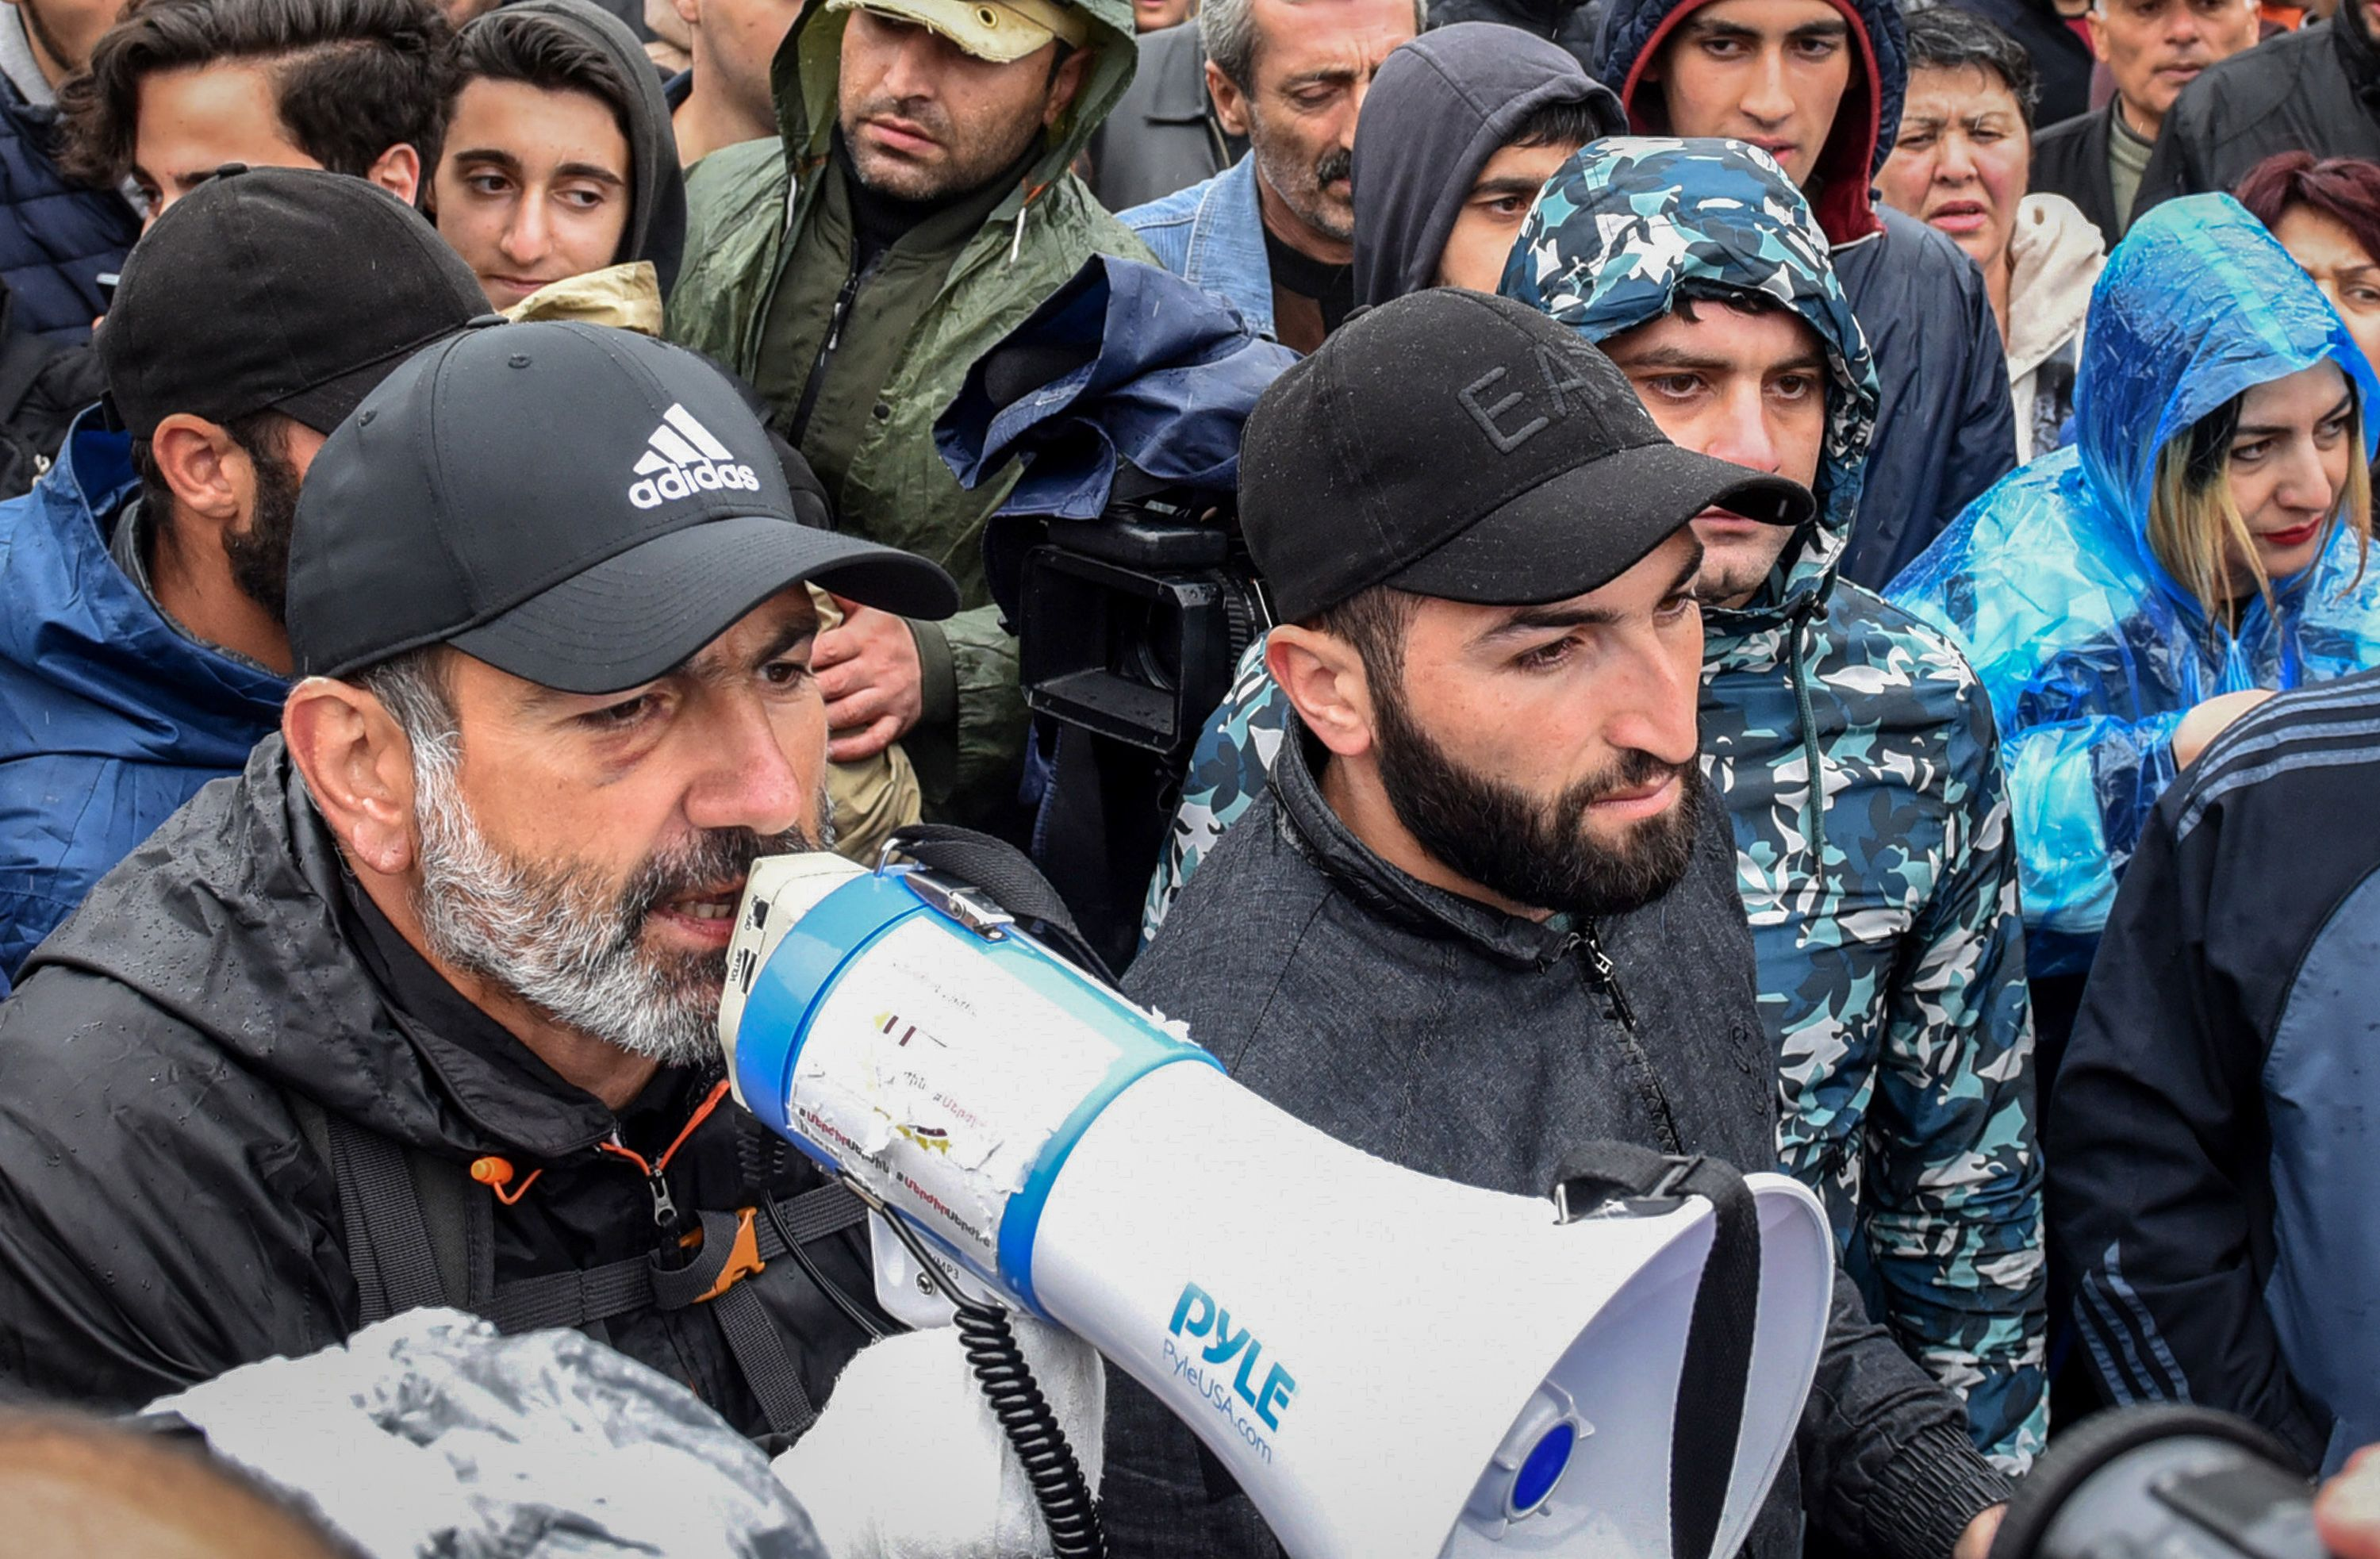 Armenian opposition leader Nikol Pashinyan (L) speaks through a megaphone during a rally in central Yerevan on April 21, 2018, held to protest the former president's election as prime minister. Armenia's political crisis deepened on April 21 as protest leader Nikol Pashinyan said he was only prepared to discuss the exit of the country's newly elected prime minister, former president Serzh Sarkisian.  / AFP PHOTO / Vano SHLAMOV